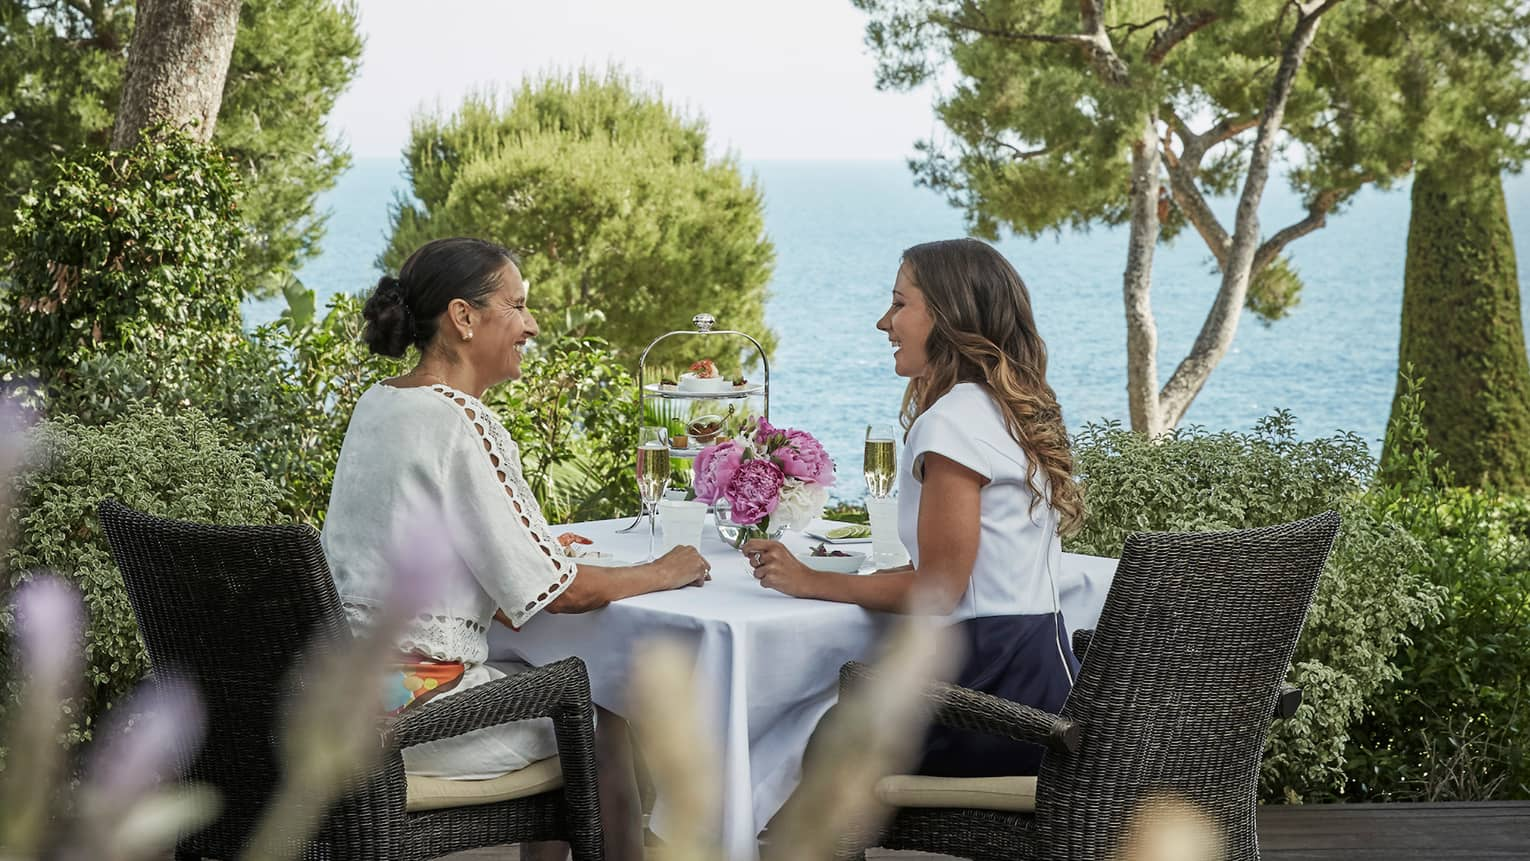 Two women sip Champagne at patio table with dessert tray, sea views